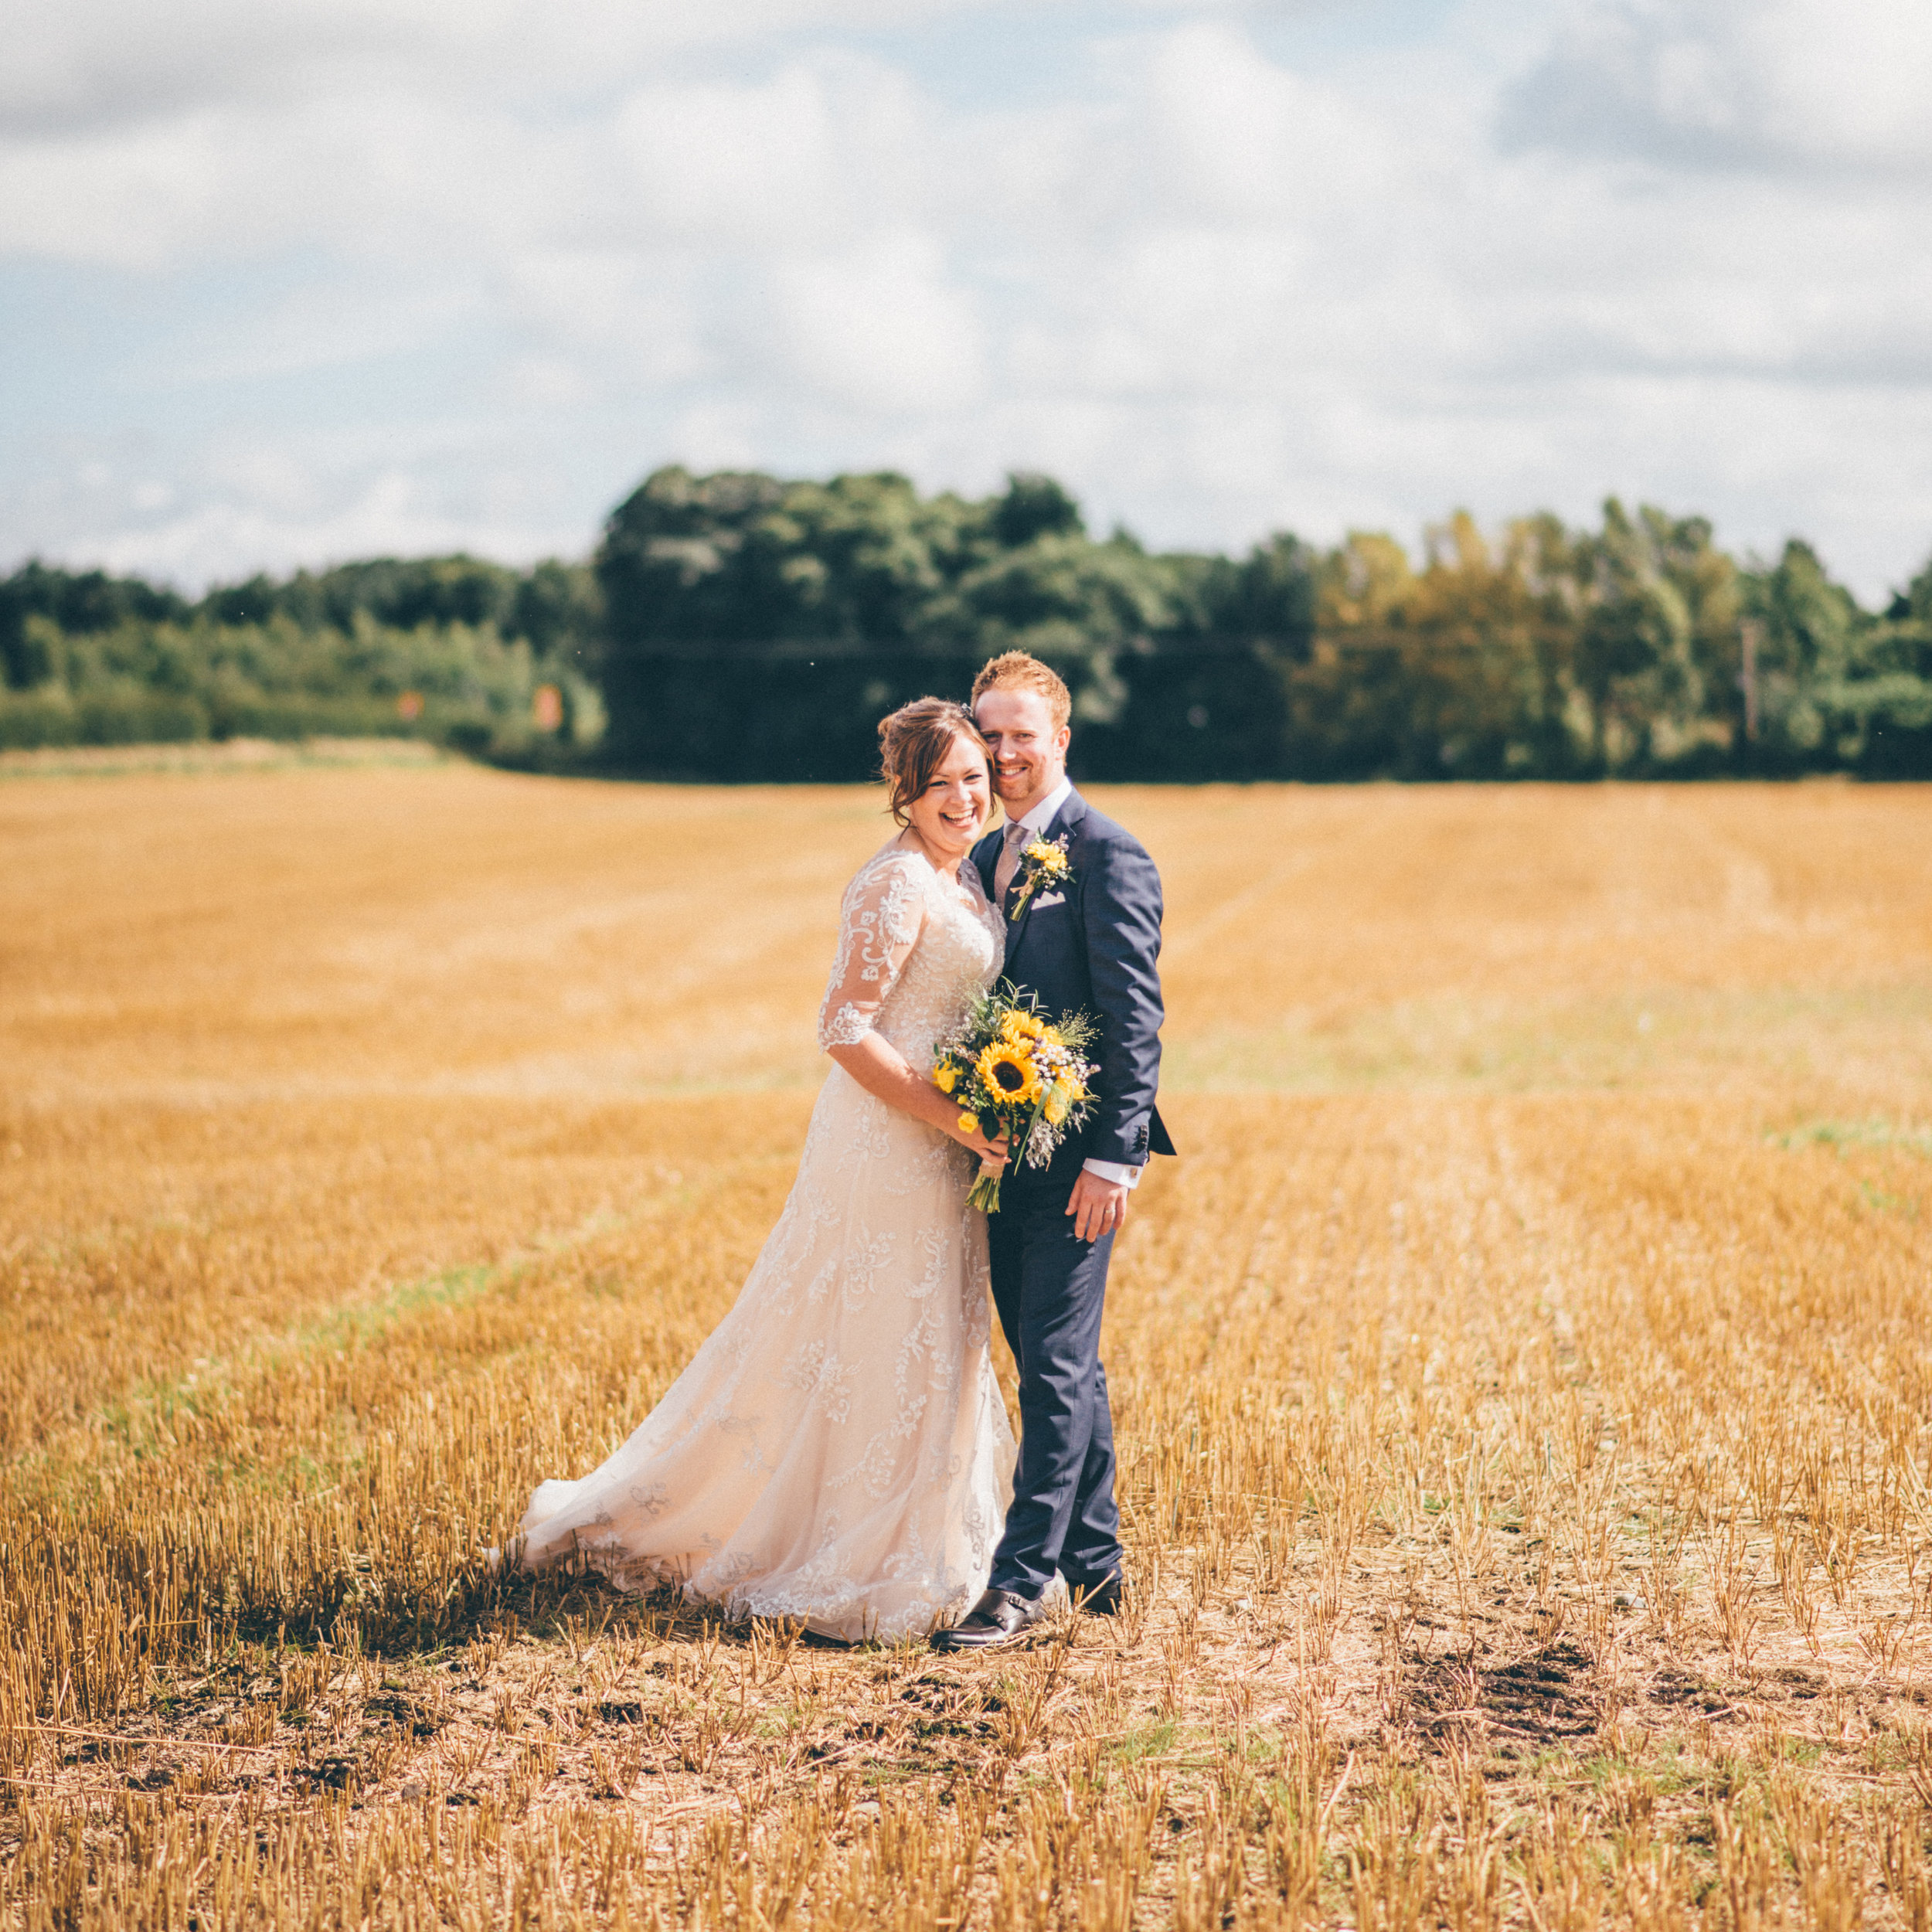 review-testimonial-weddingtestimonial-sandholeoakbarn-cheshirewedding-cheshireweddingphotographer